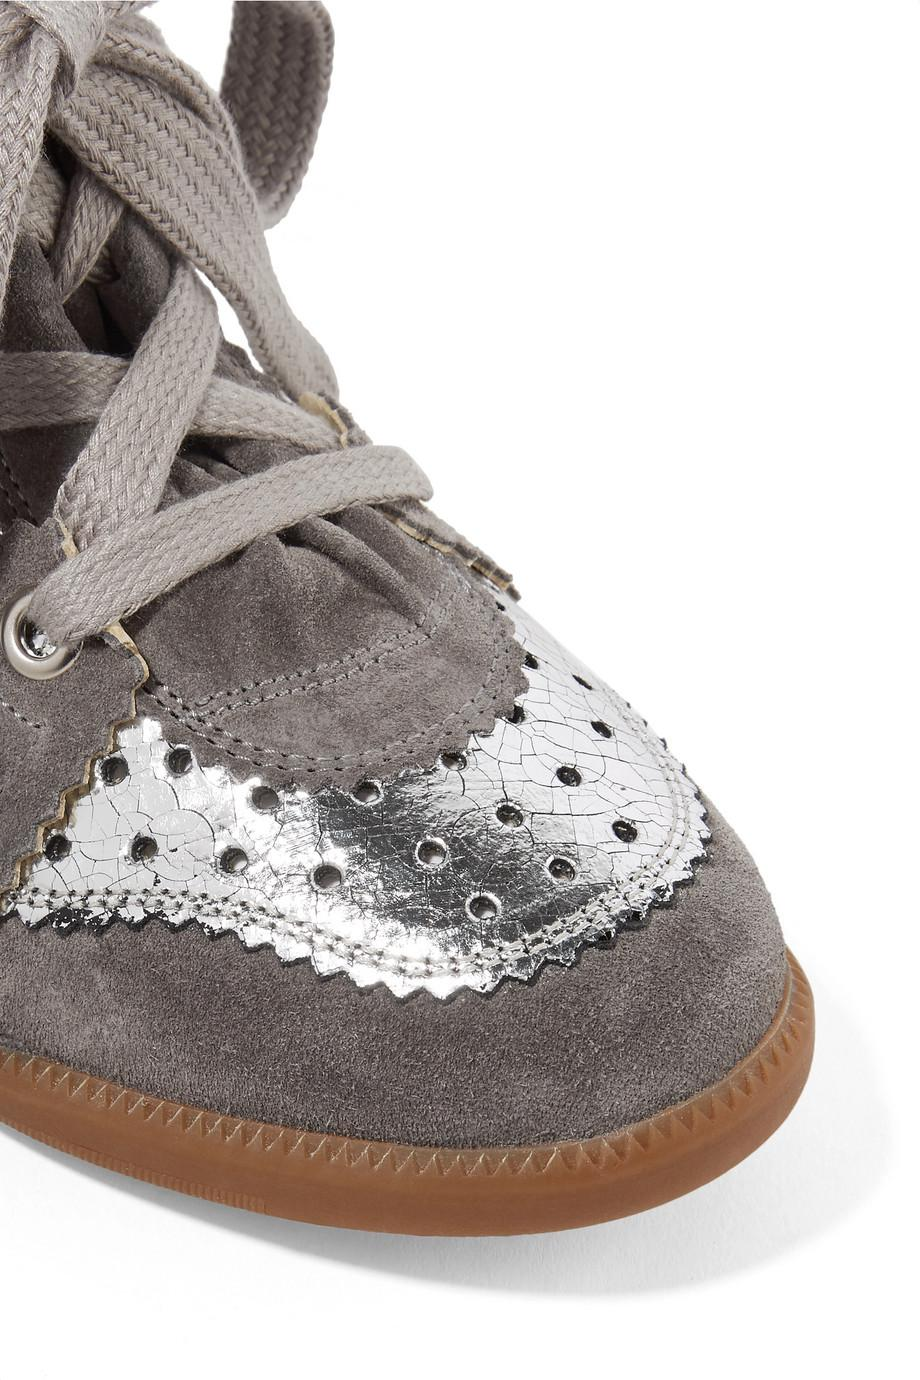 Bobby Perforated Metallic Leather And Suede Wedge Sneakers - Silver Isabel Marant vJdGjTkJ